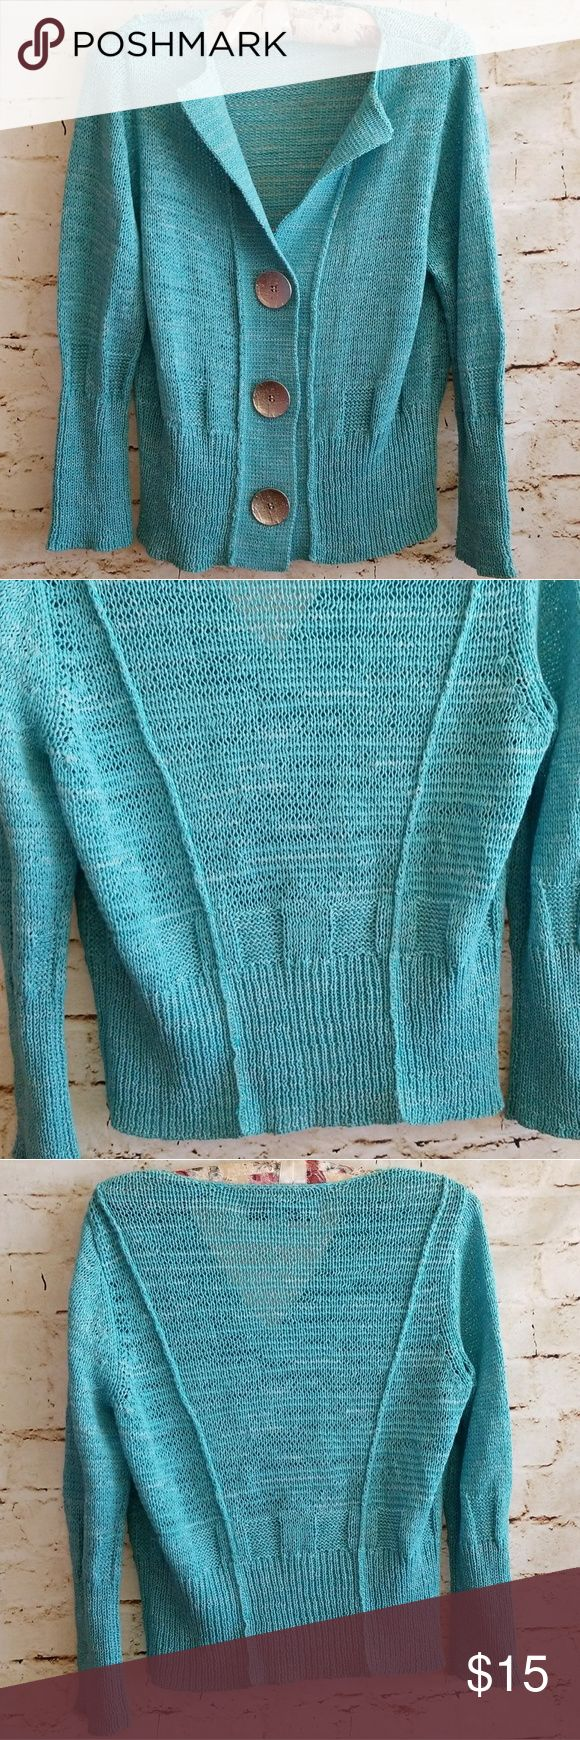 ▪Curio▪Teal Cardigan ☆Teal cardigan from Curio in Size Medium Petite ☆53% cotton/47% polyester  Thanks for looking⚘ Curio Sweaters Cardigans